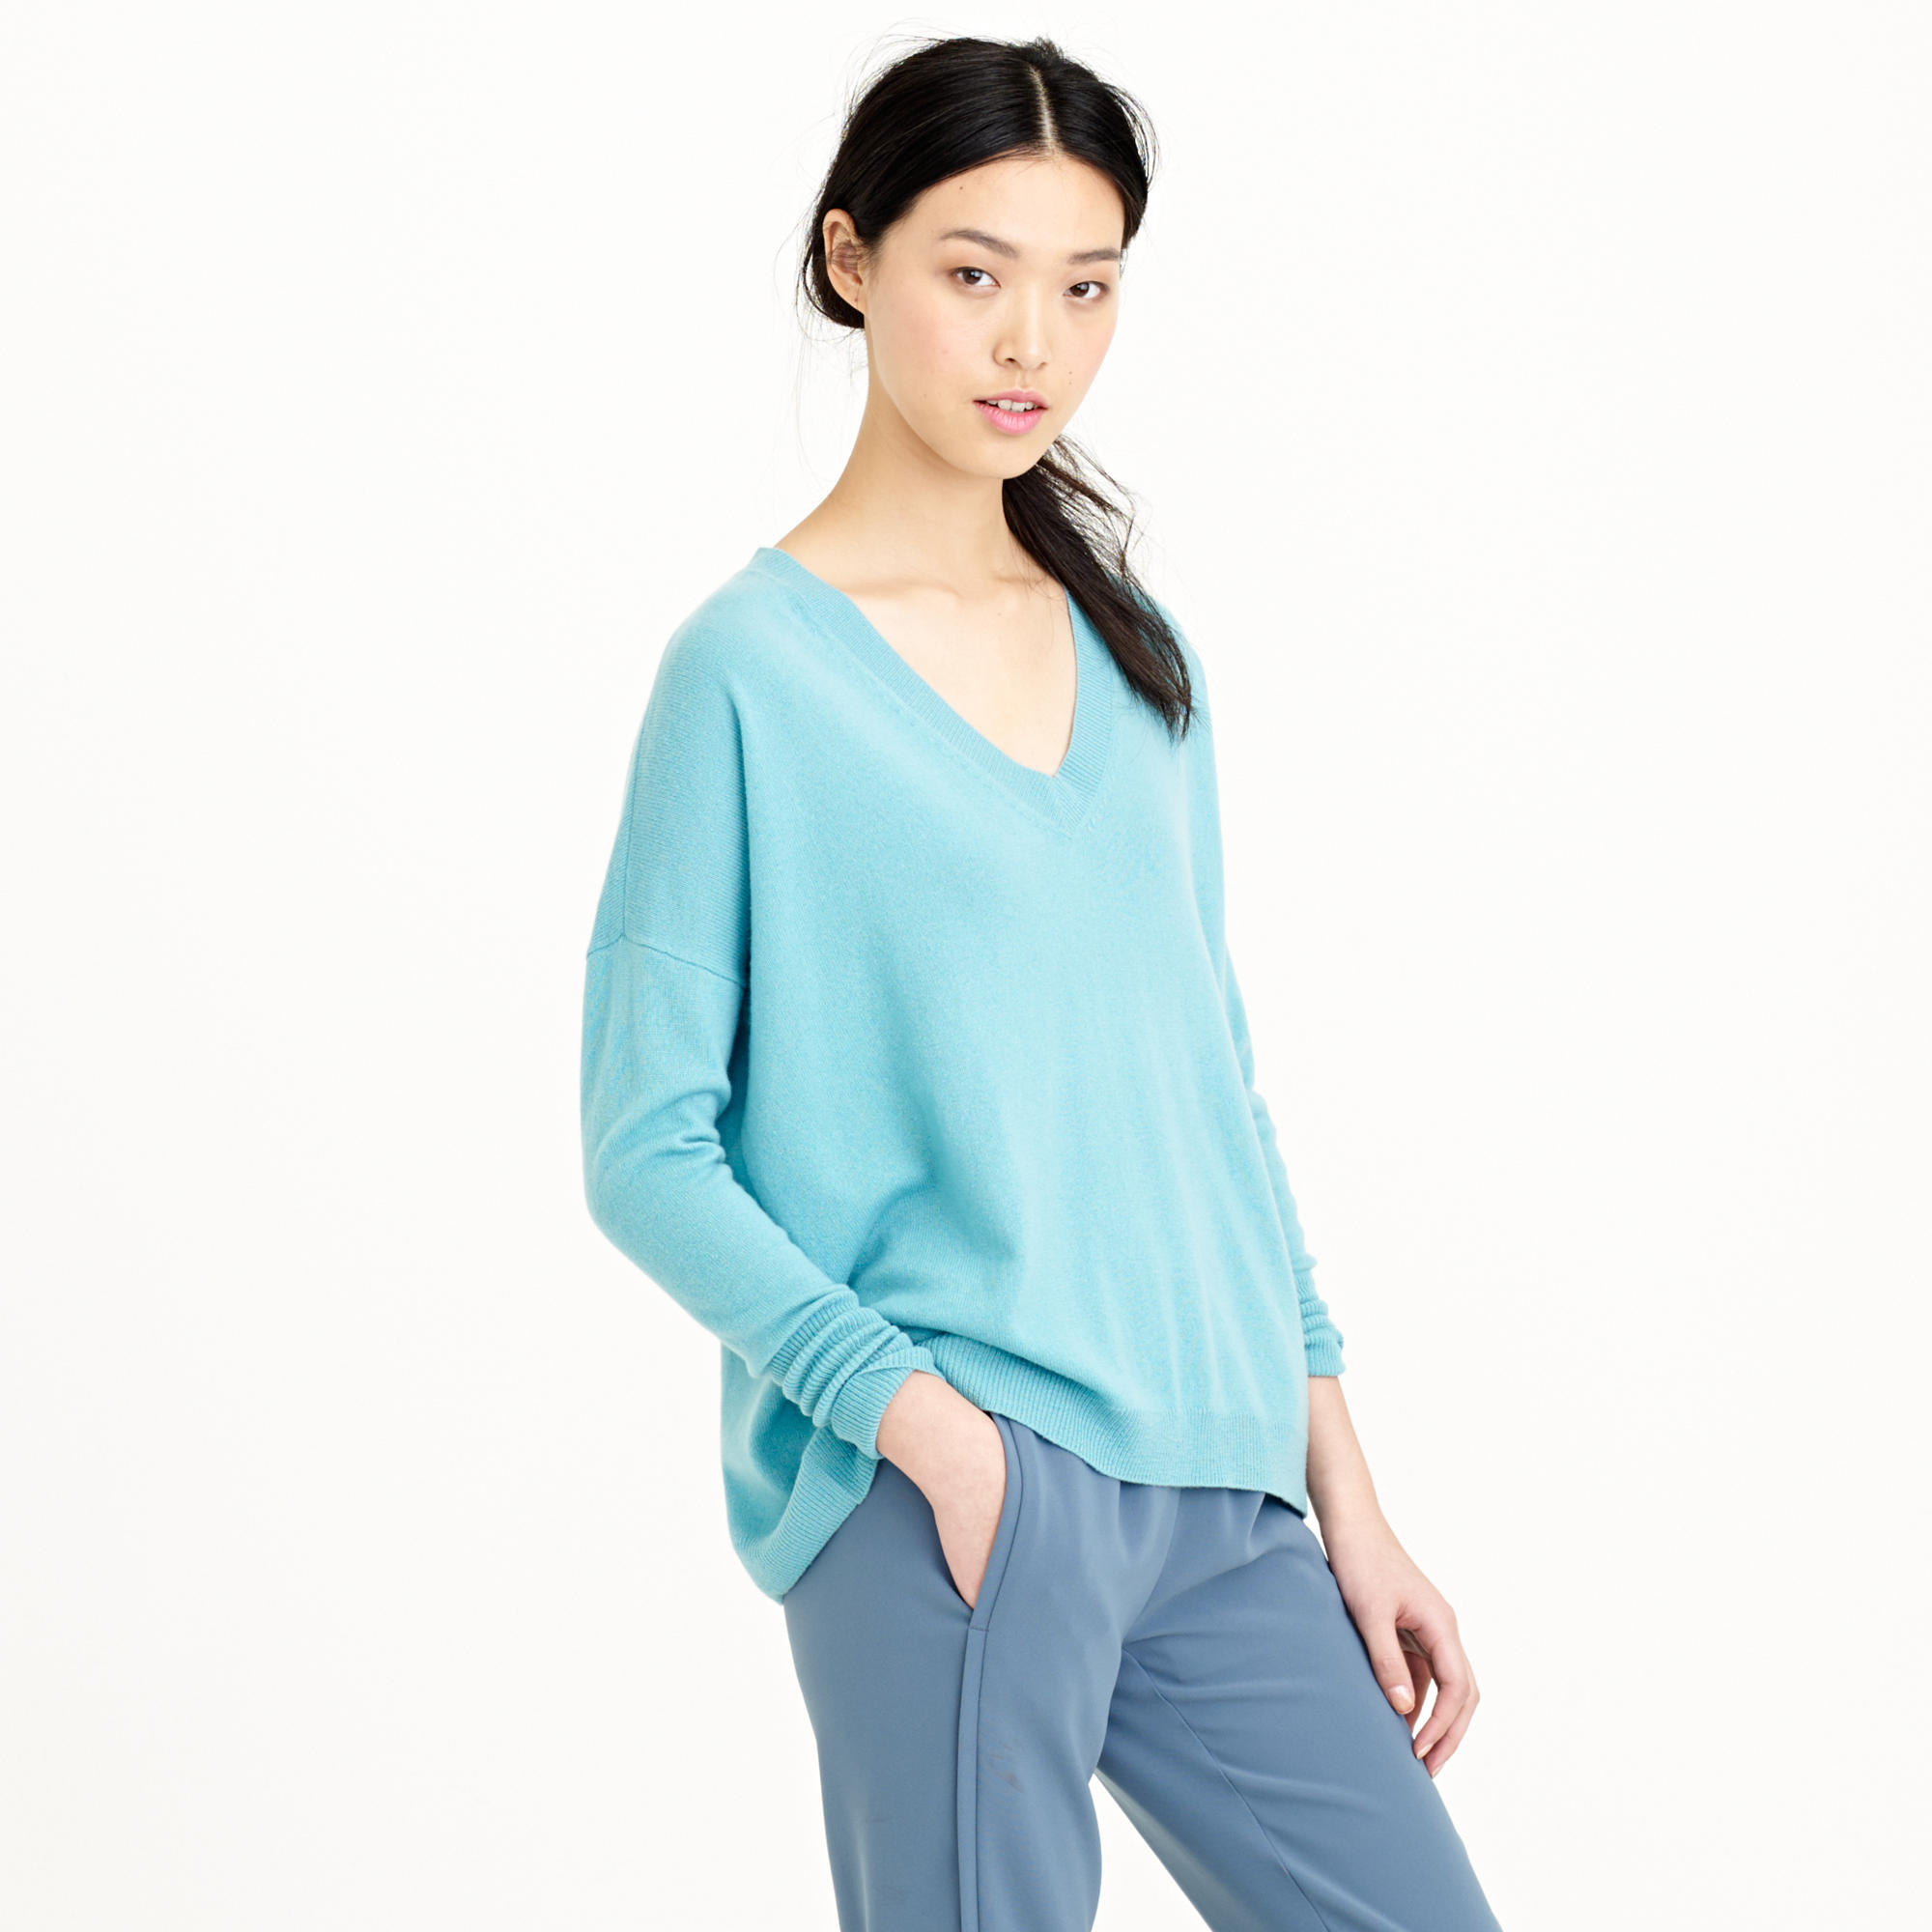 Italian cashmere boyfriend V-neck sweater : Women cashmere | Factory